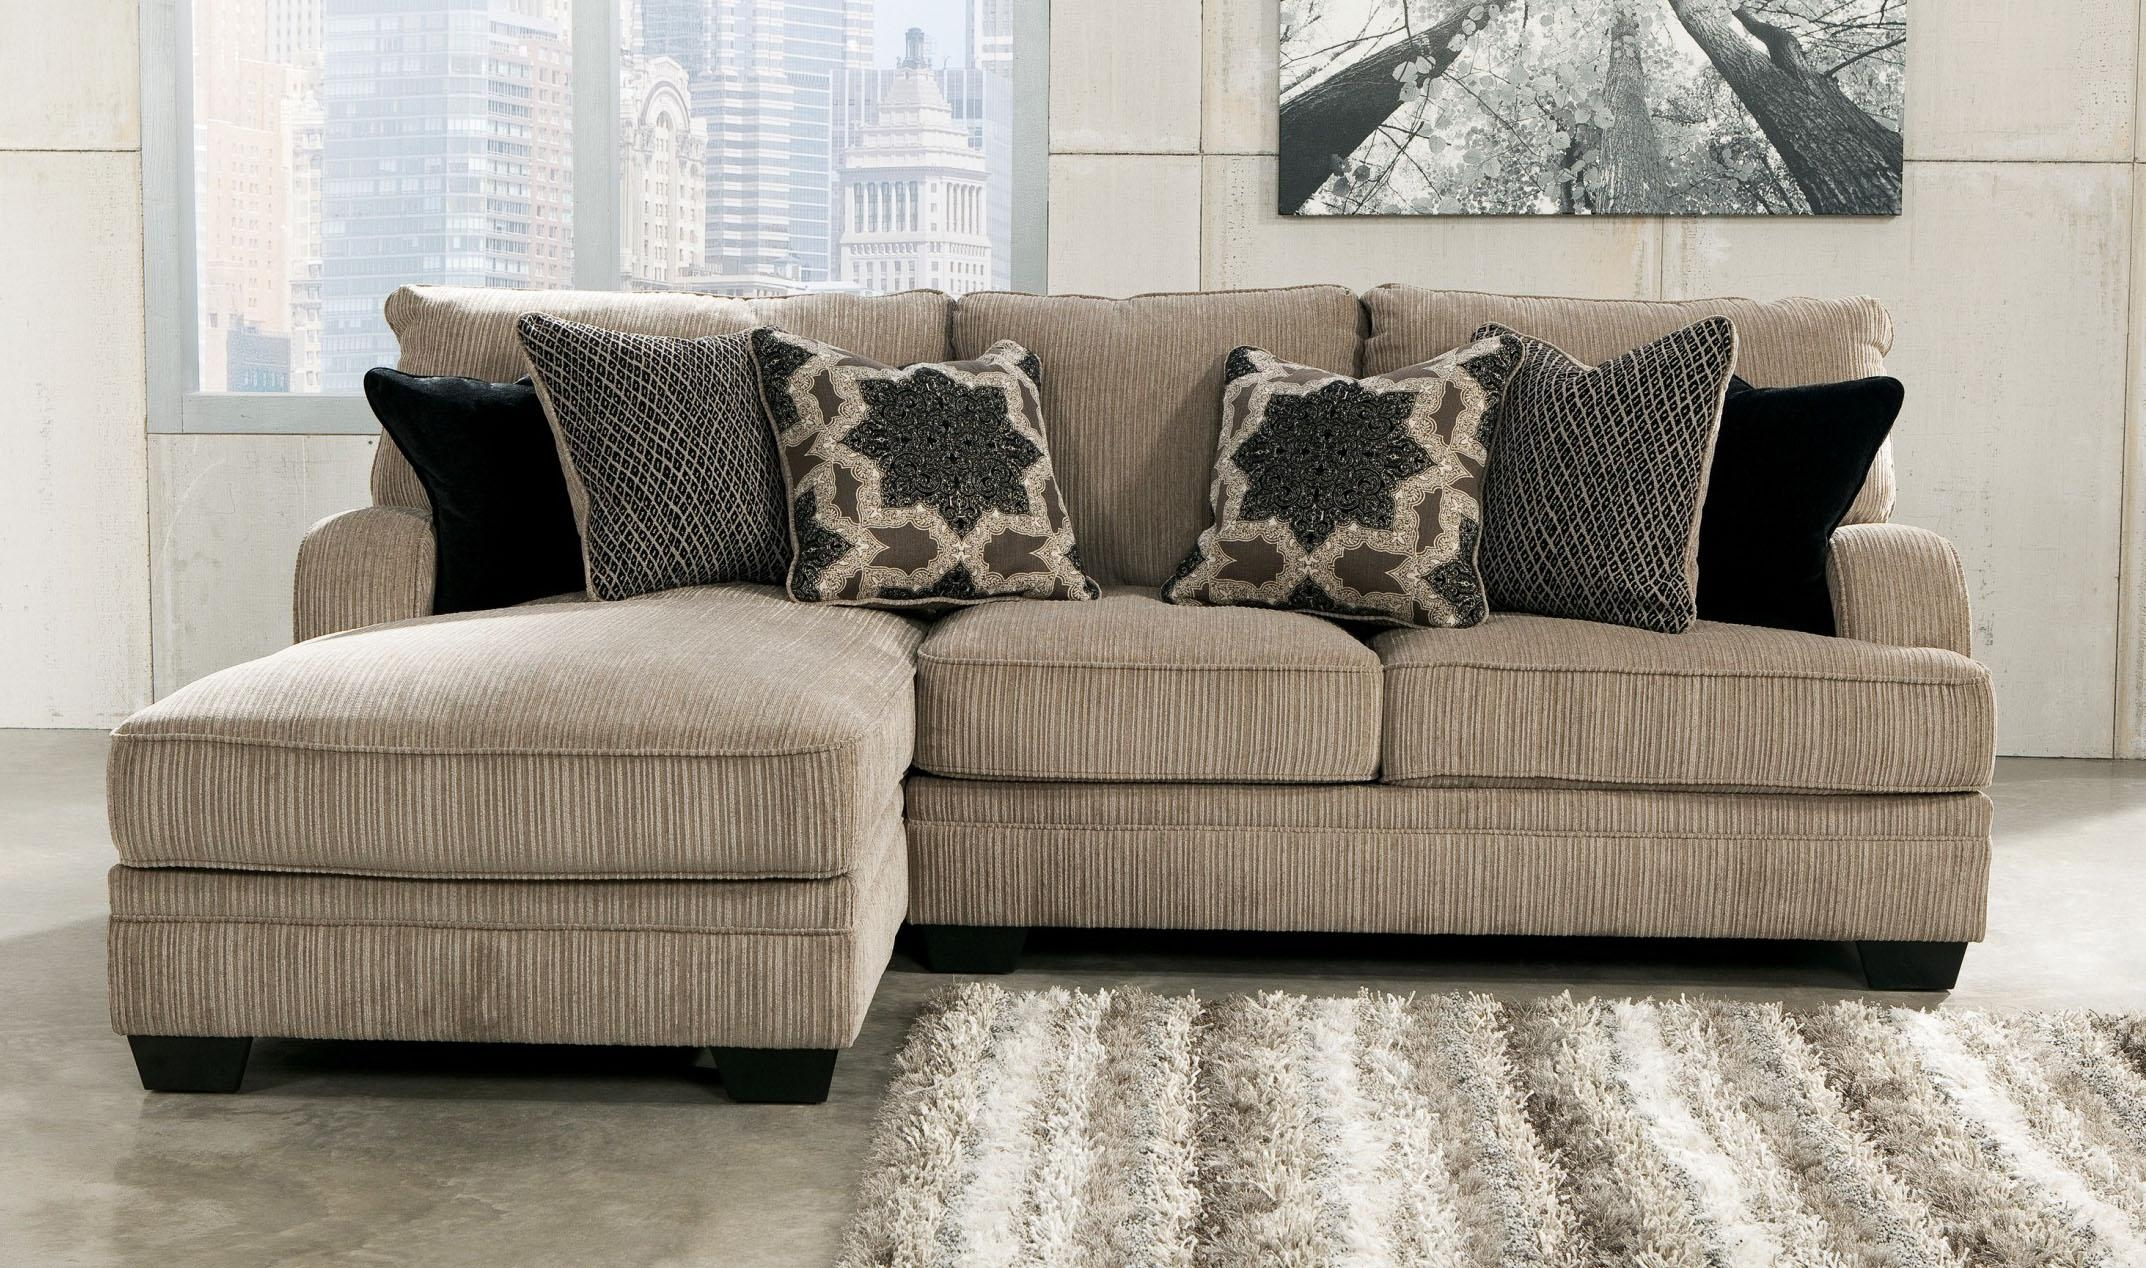 20 Ideas Of Small L Shaped Sectional Sofas Sofa Ideas